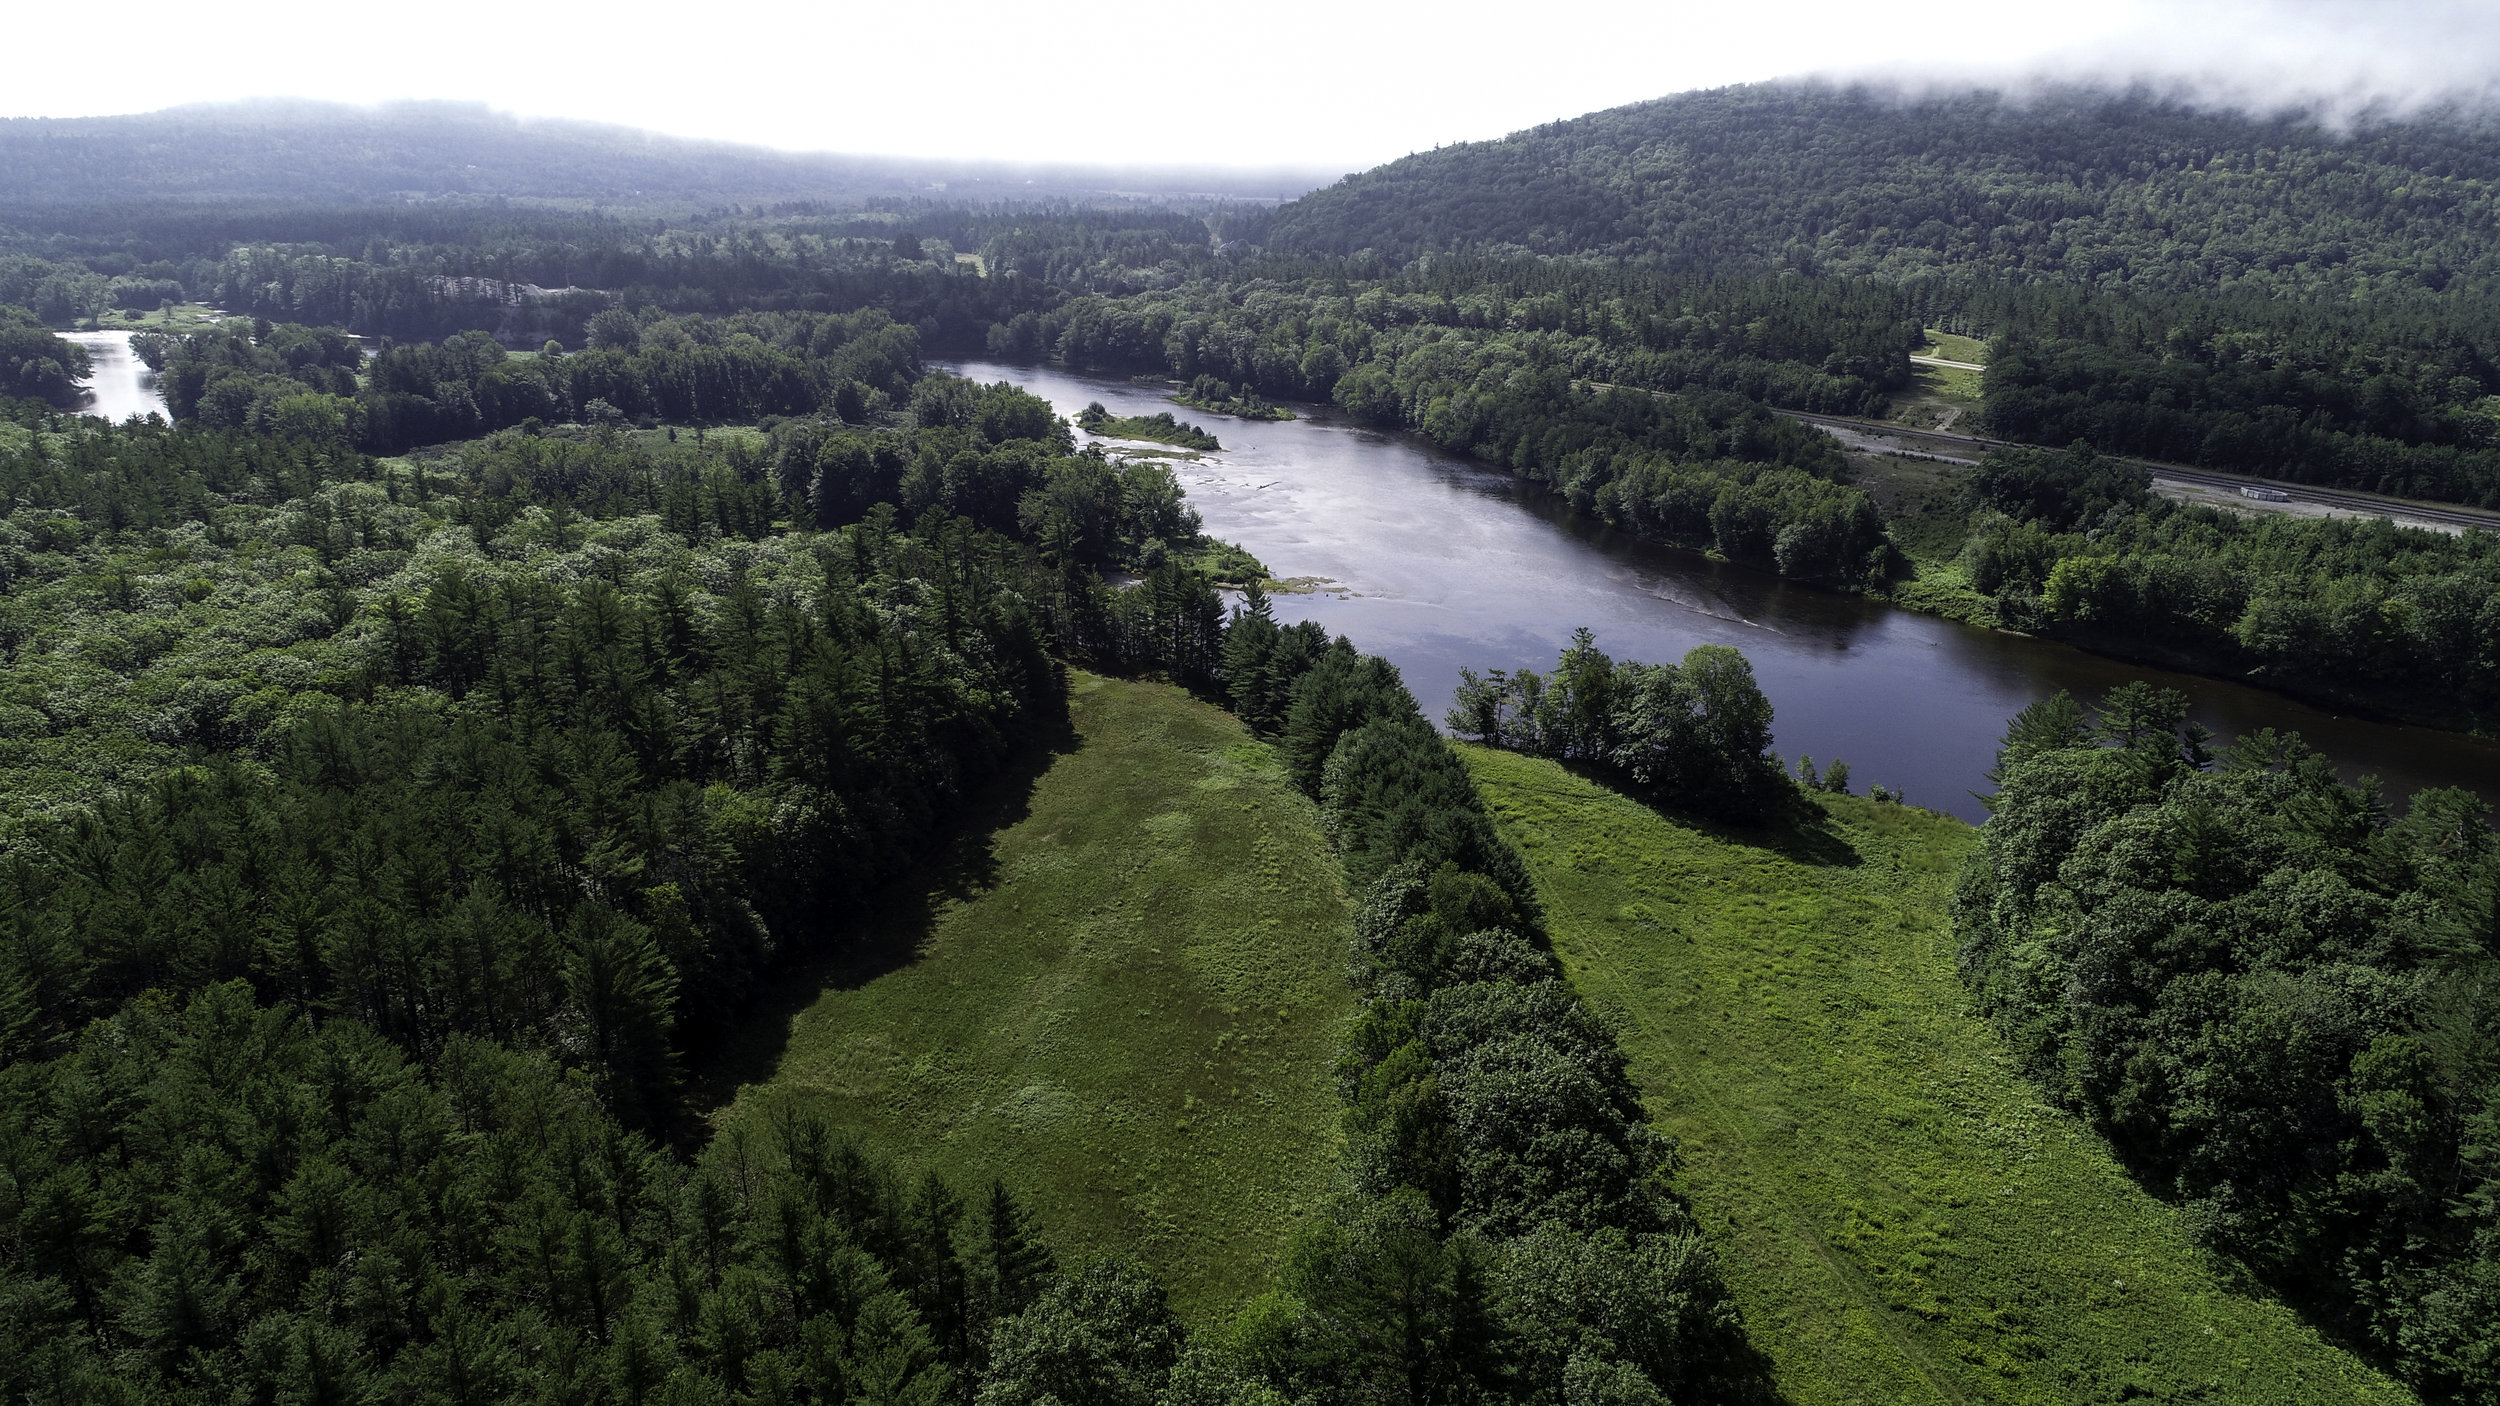 Stretching from the north side of the Androscoggin River to 1600' in elevation on the Riley Township line, the land squarely supports MLT's major goal to conserve large connected areas, wildlife corridors, special places, and lands that allow sustainable, economically productive use.